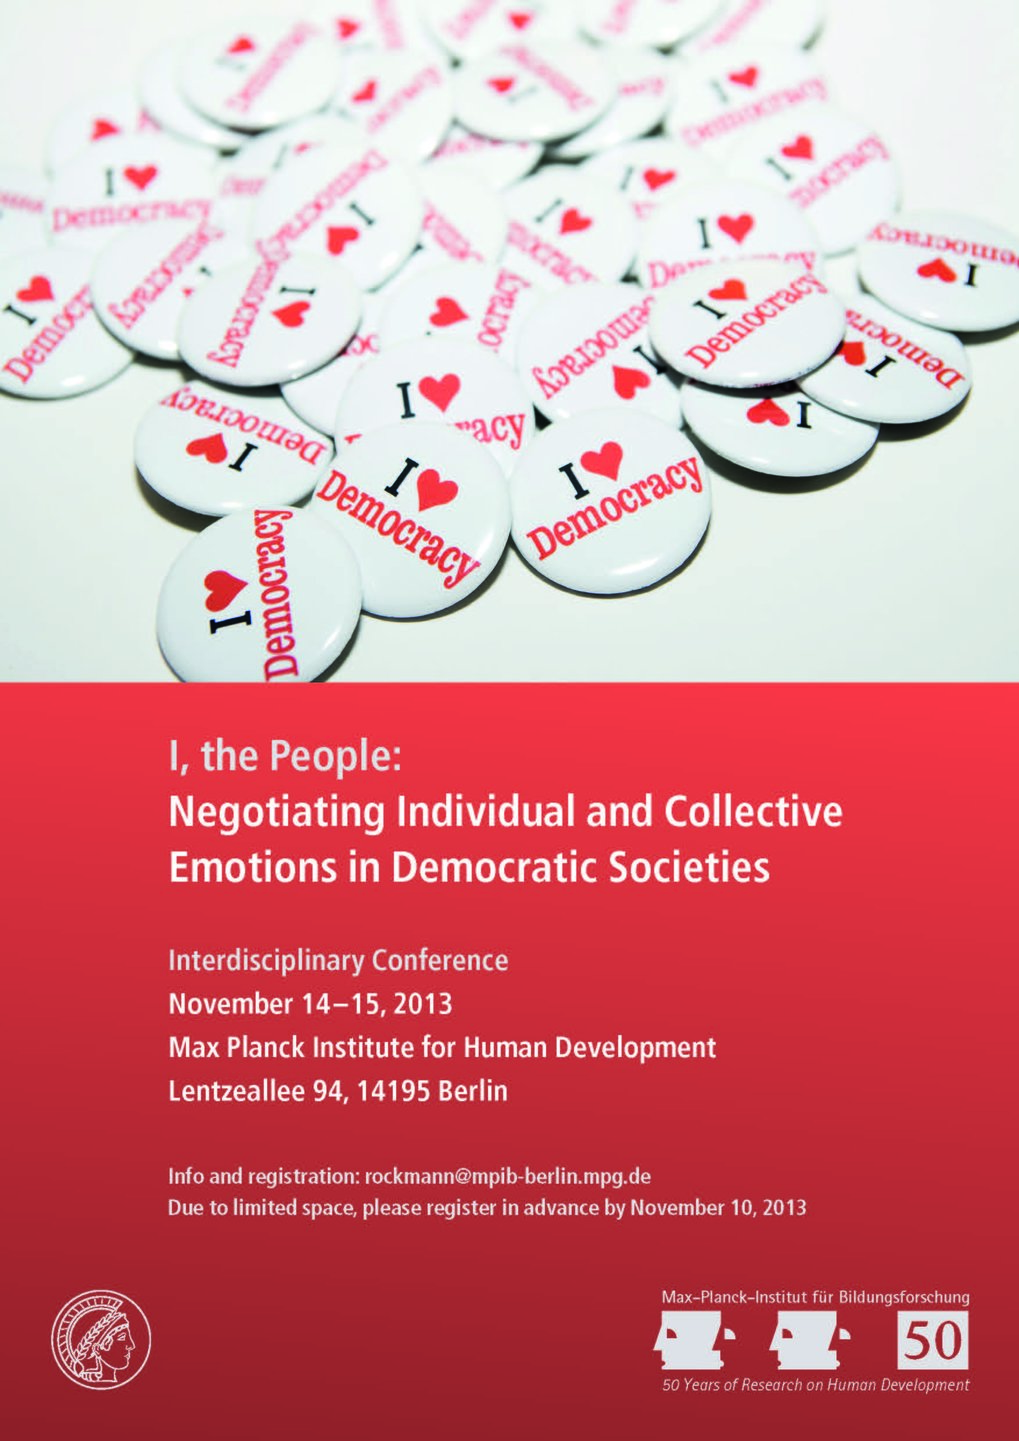 I, the People. Negotiating Individual and Collective Emotions in Democratic Societies<br />14.-15. November 2013